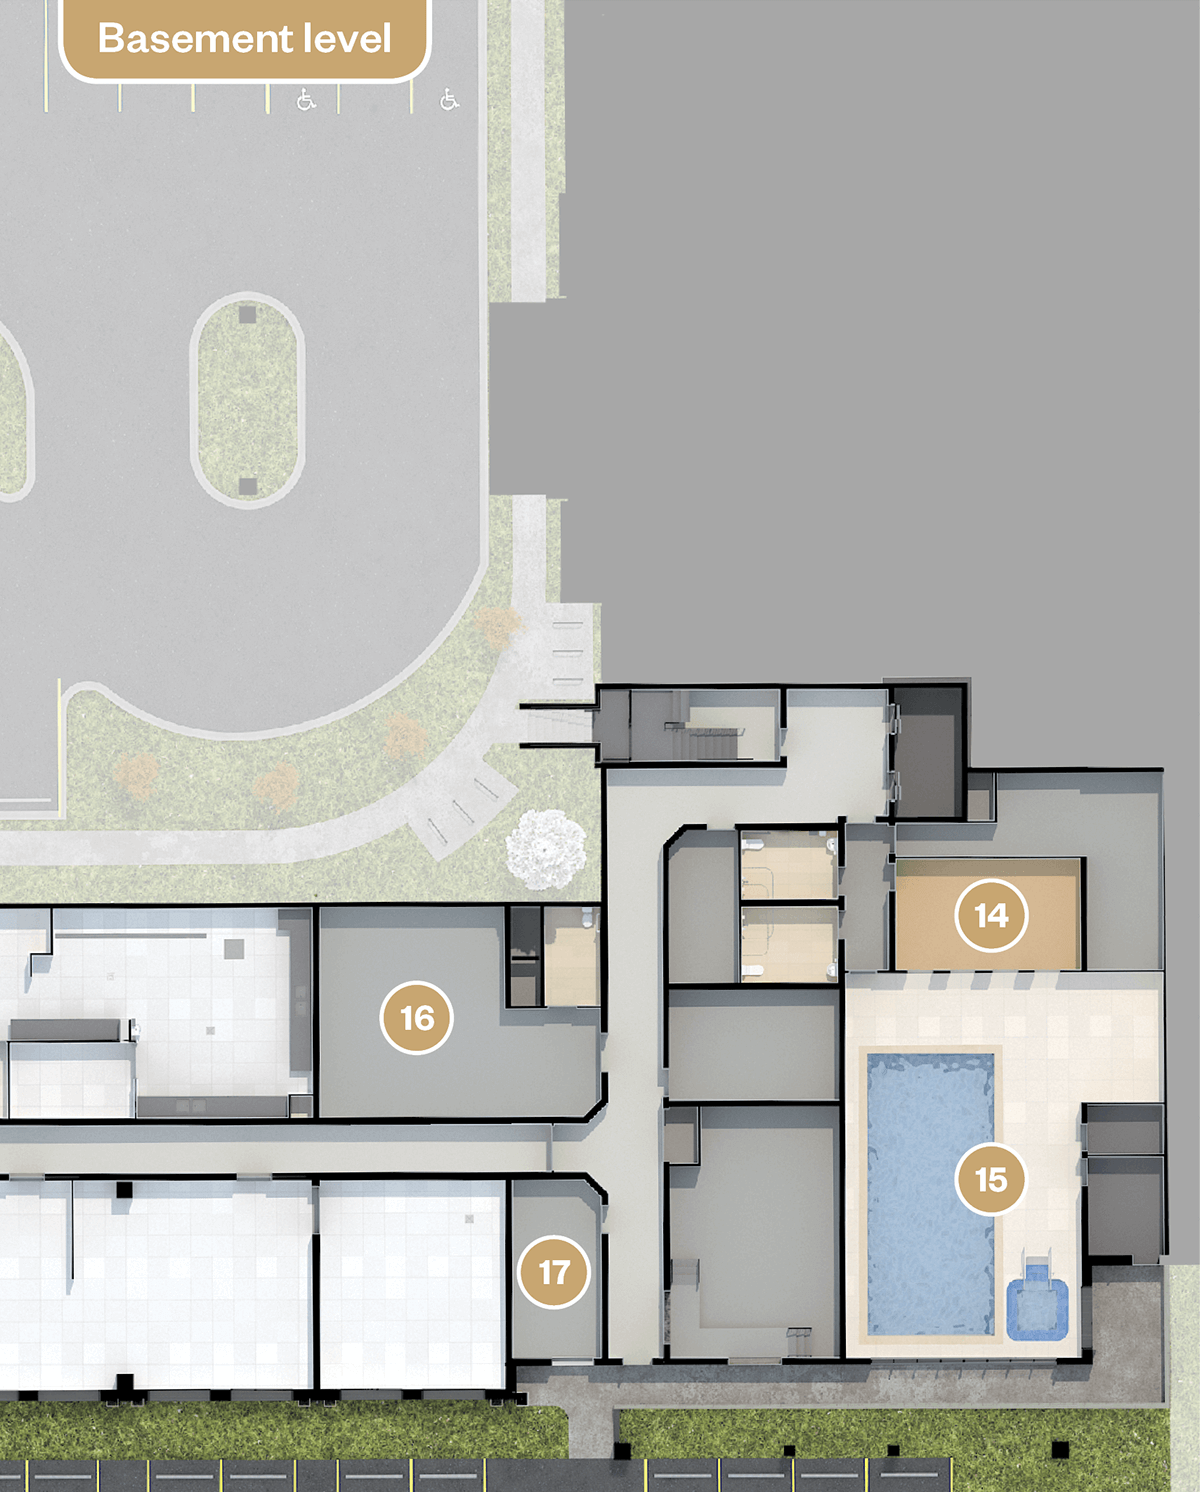 highton-basement-level-map